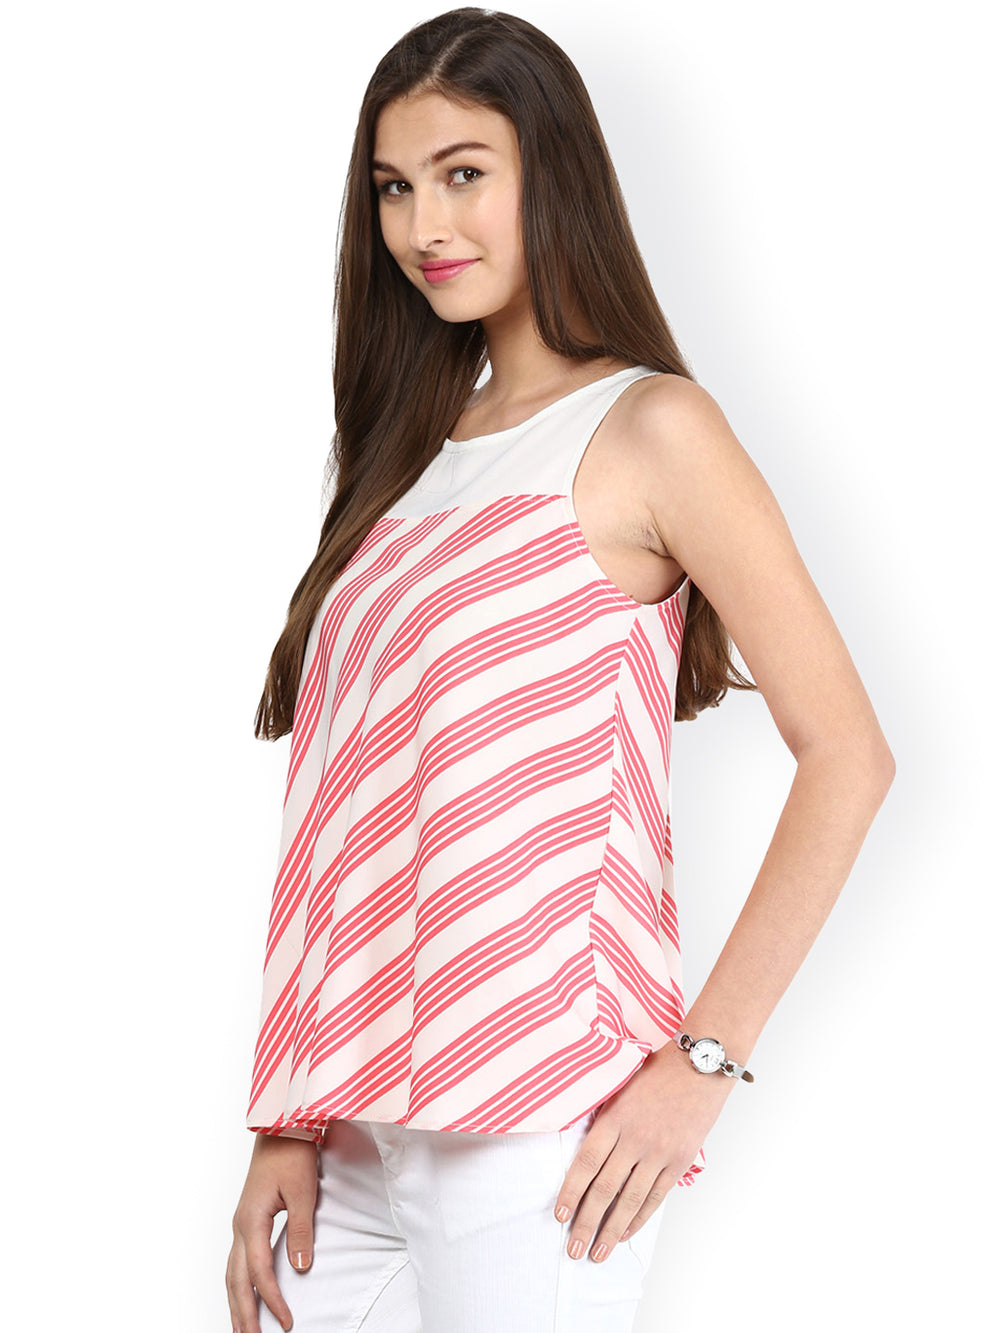 Besiva White & Pink Striped Top